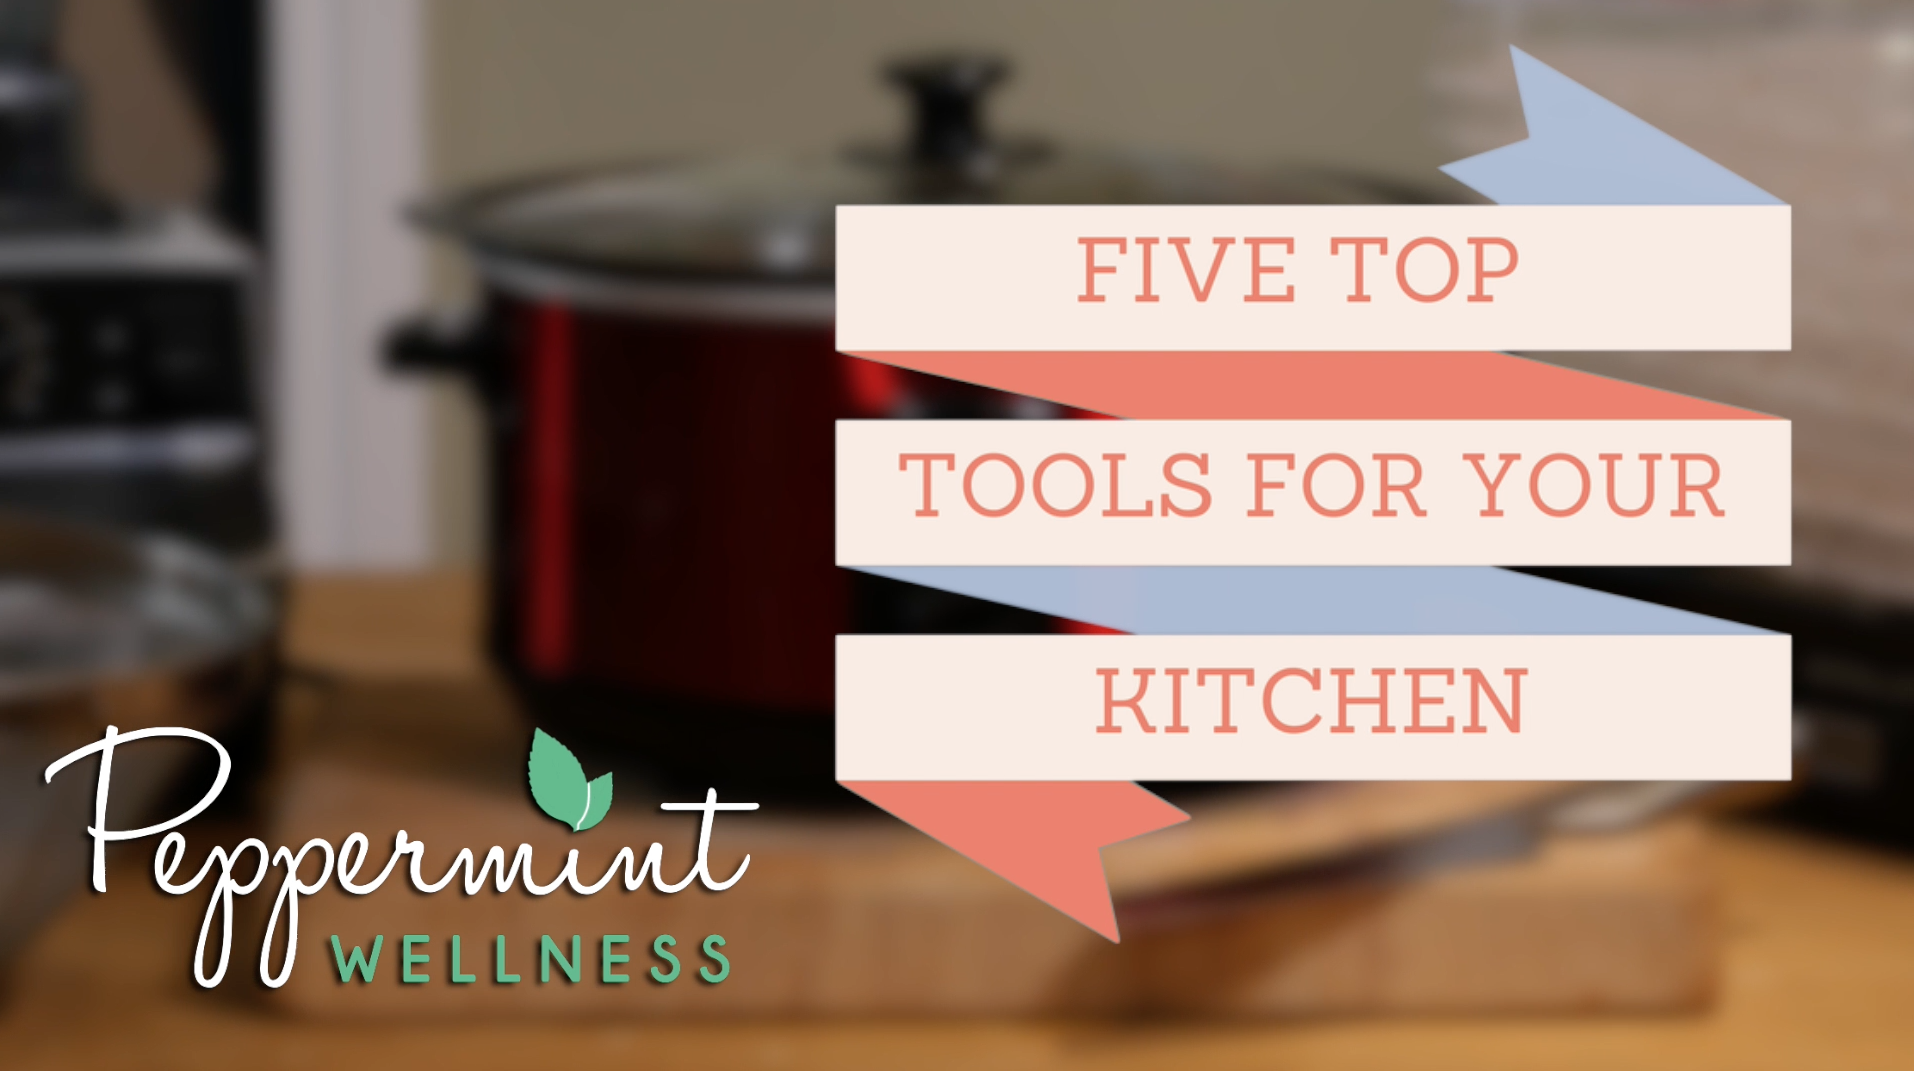 My Five Top Tools for your Kitchen